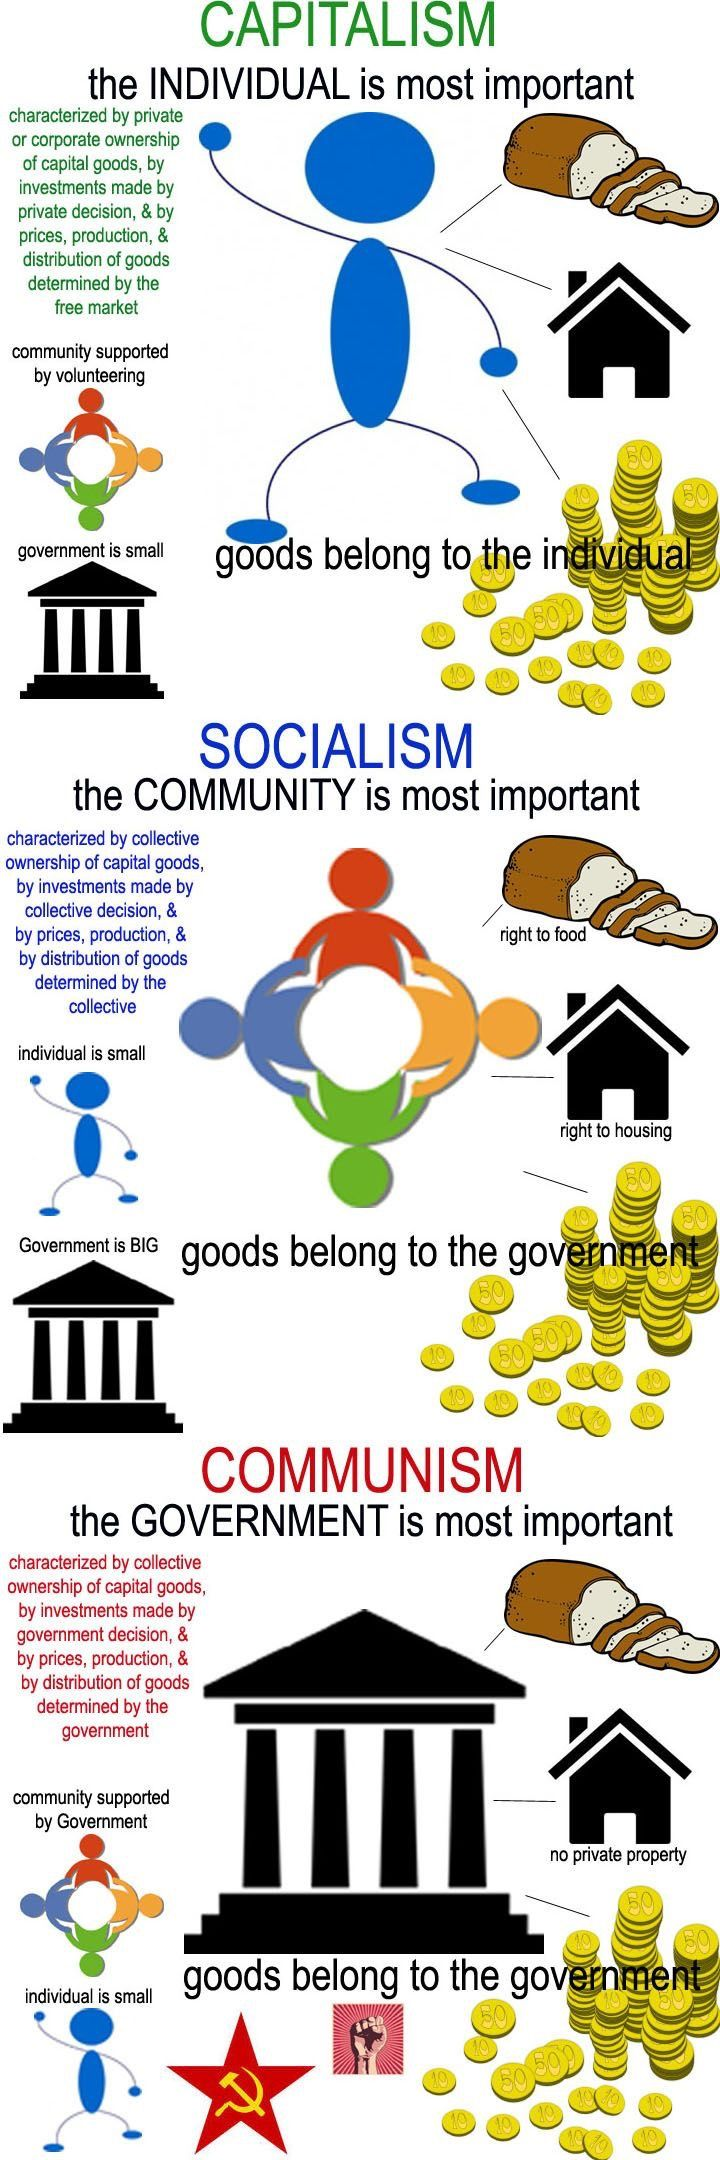 Capitalism vs Socialism vs Communism